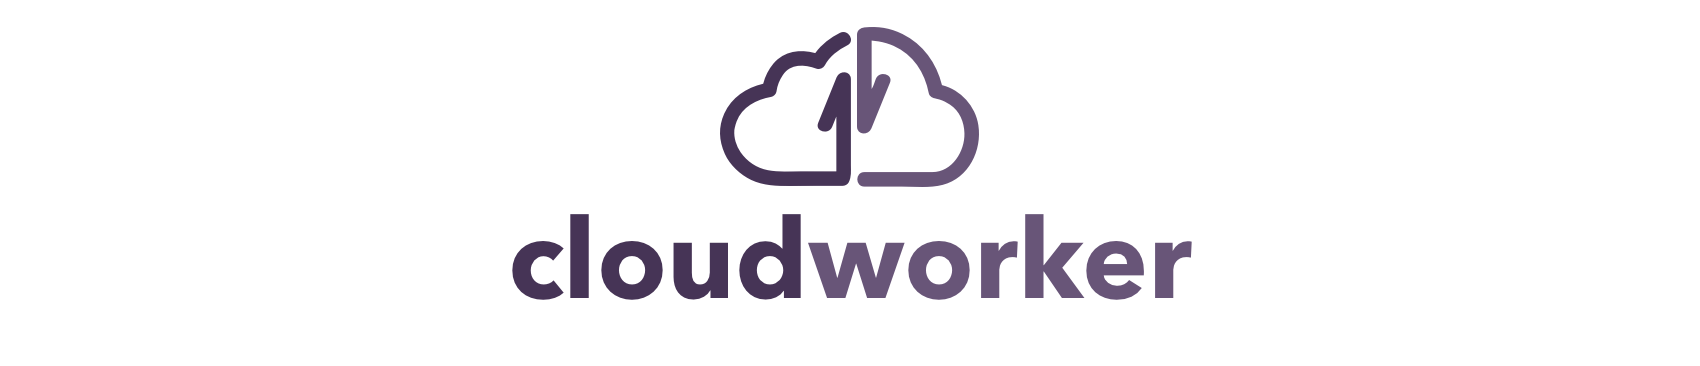 Cloudworker — A local Cloudflare Worker Runner - DSC Engineering